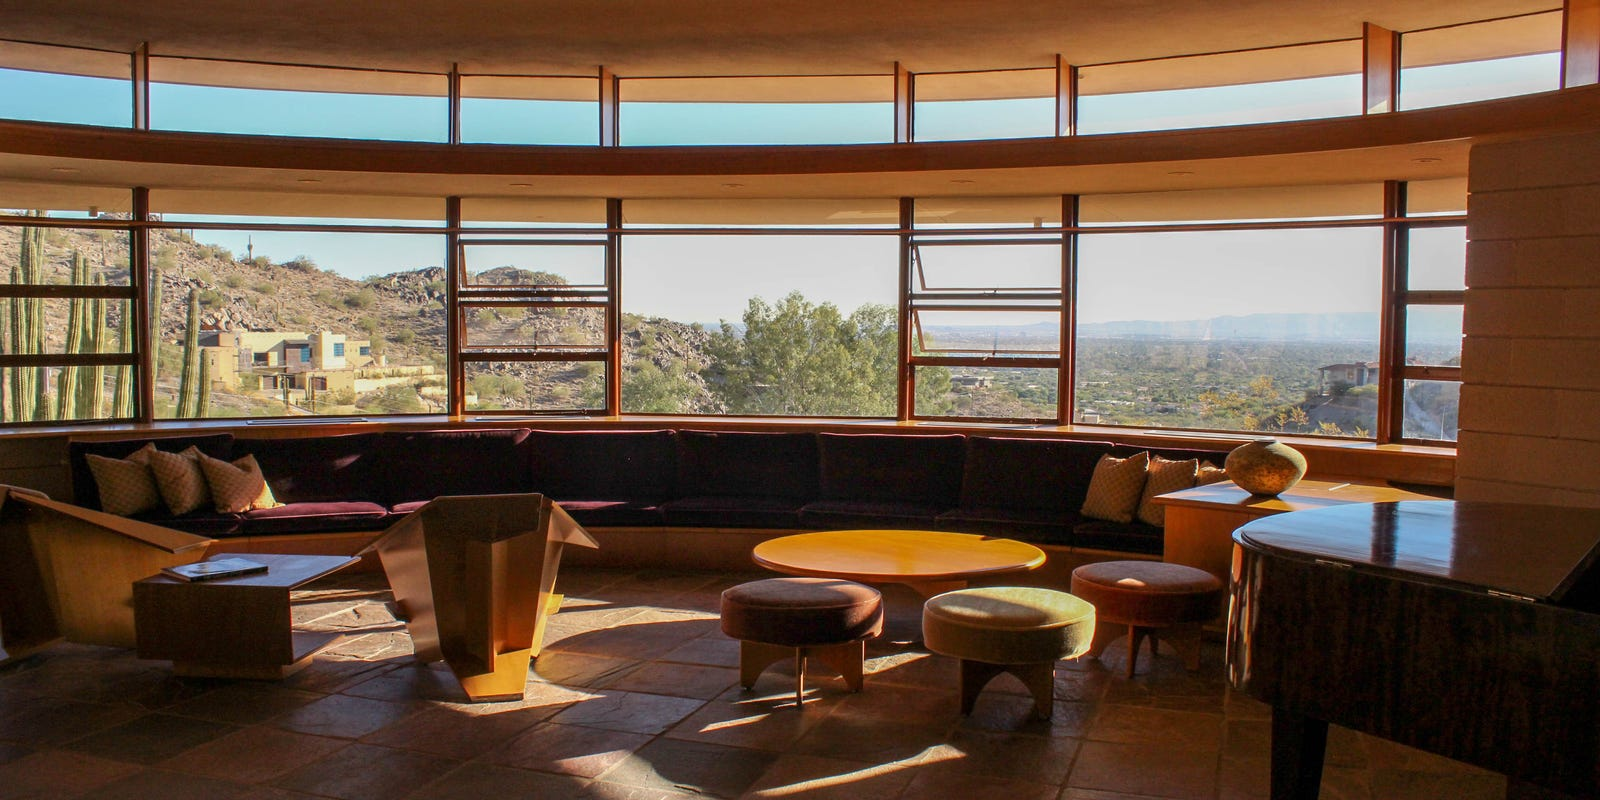 Iconic Frank Lloyd Wright-designed house for sale in Phoenix: $3.25M